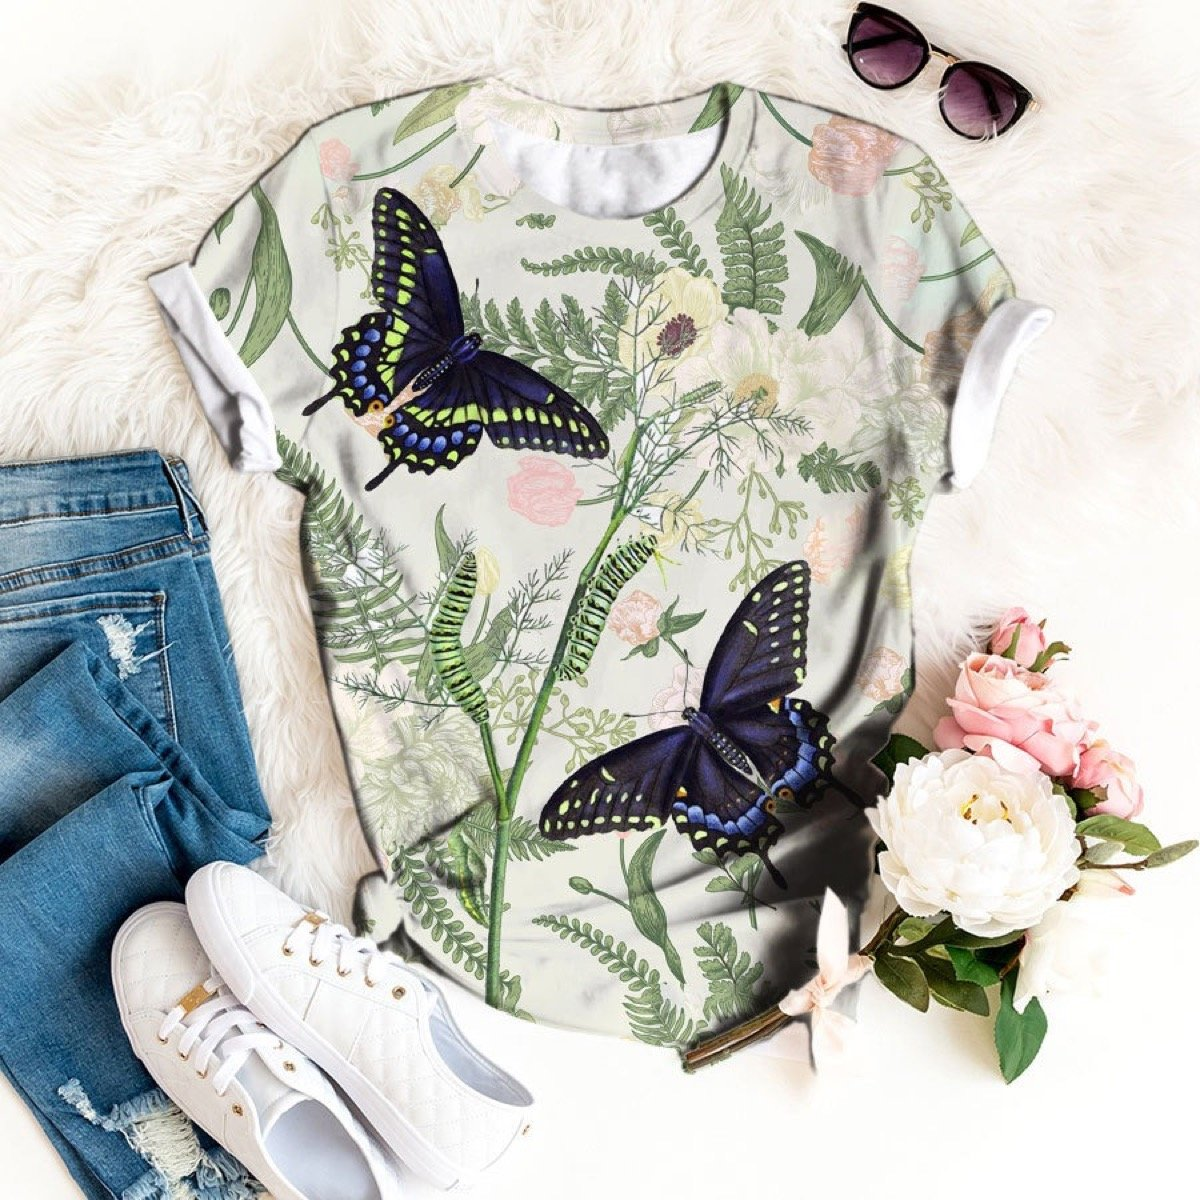 Free as a Butterfly T-shirt 2